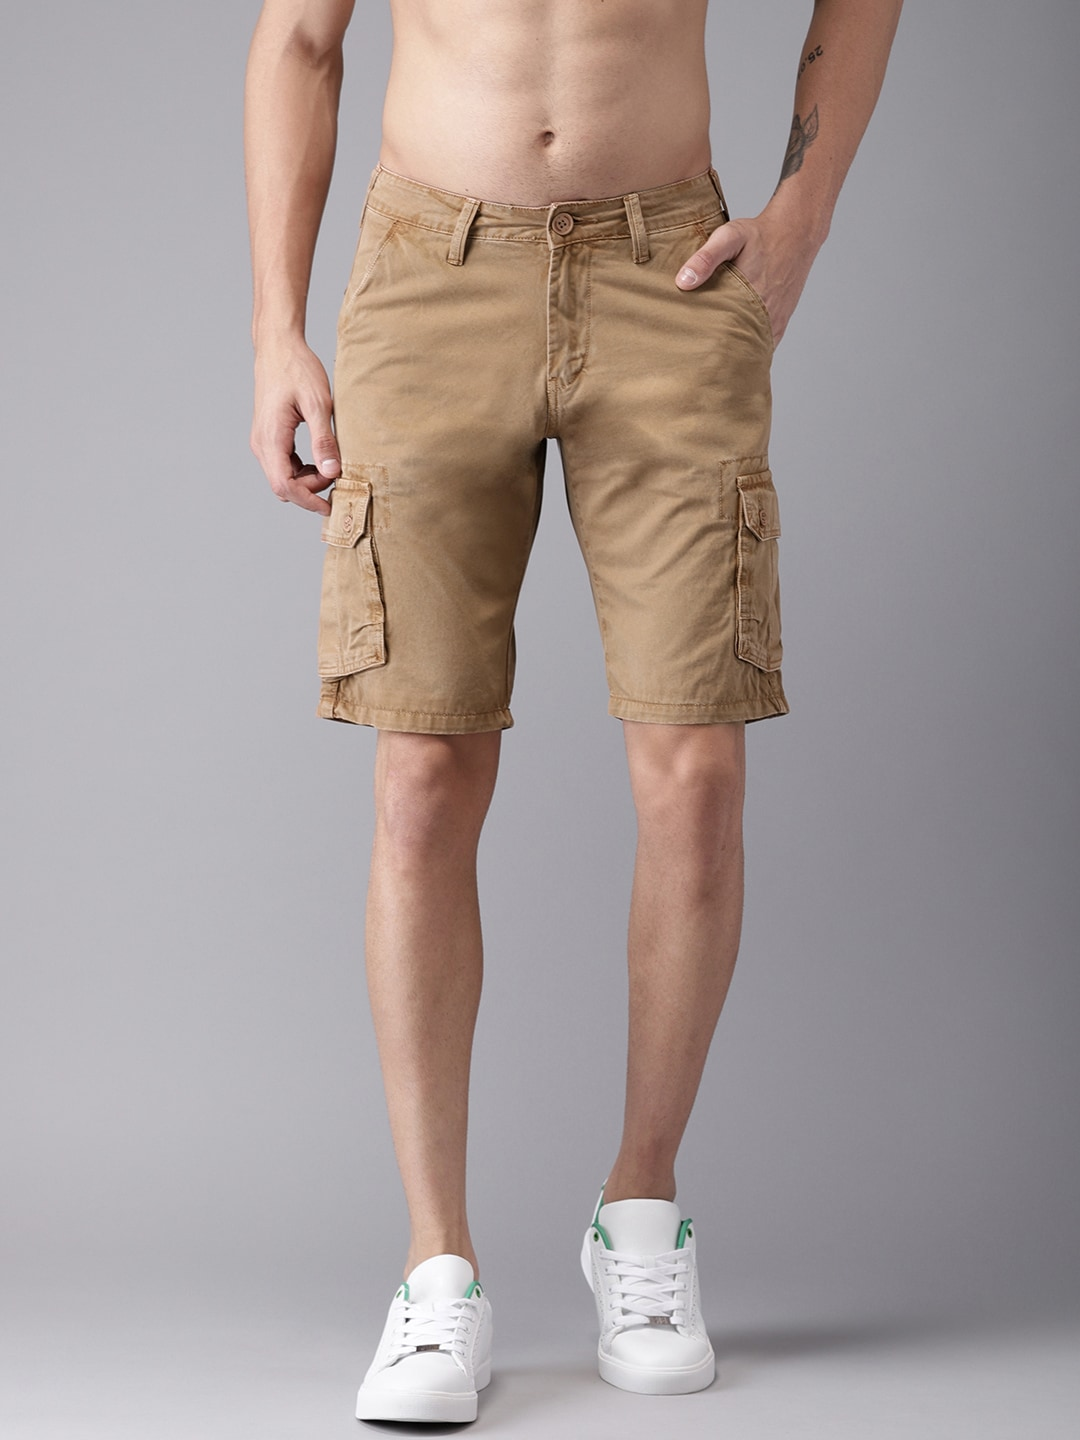 f447d9cf360 What Color Shirt Should I Wear With White Cargo Shorts | Lixnet AG